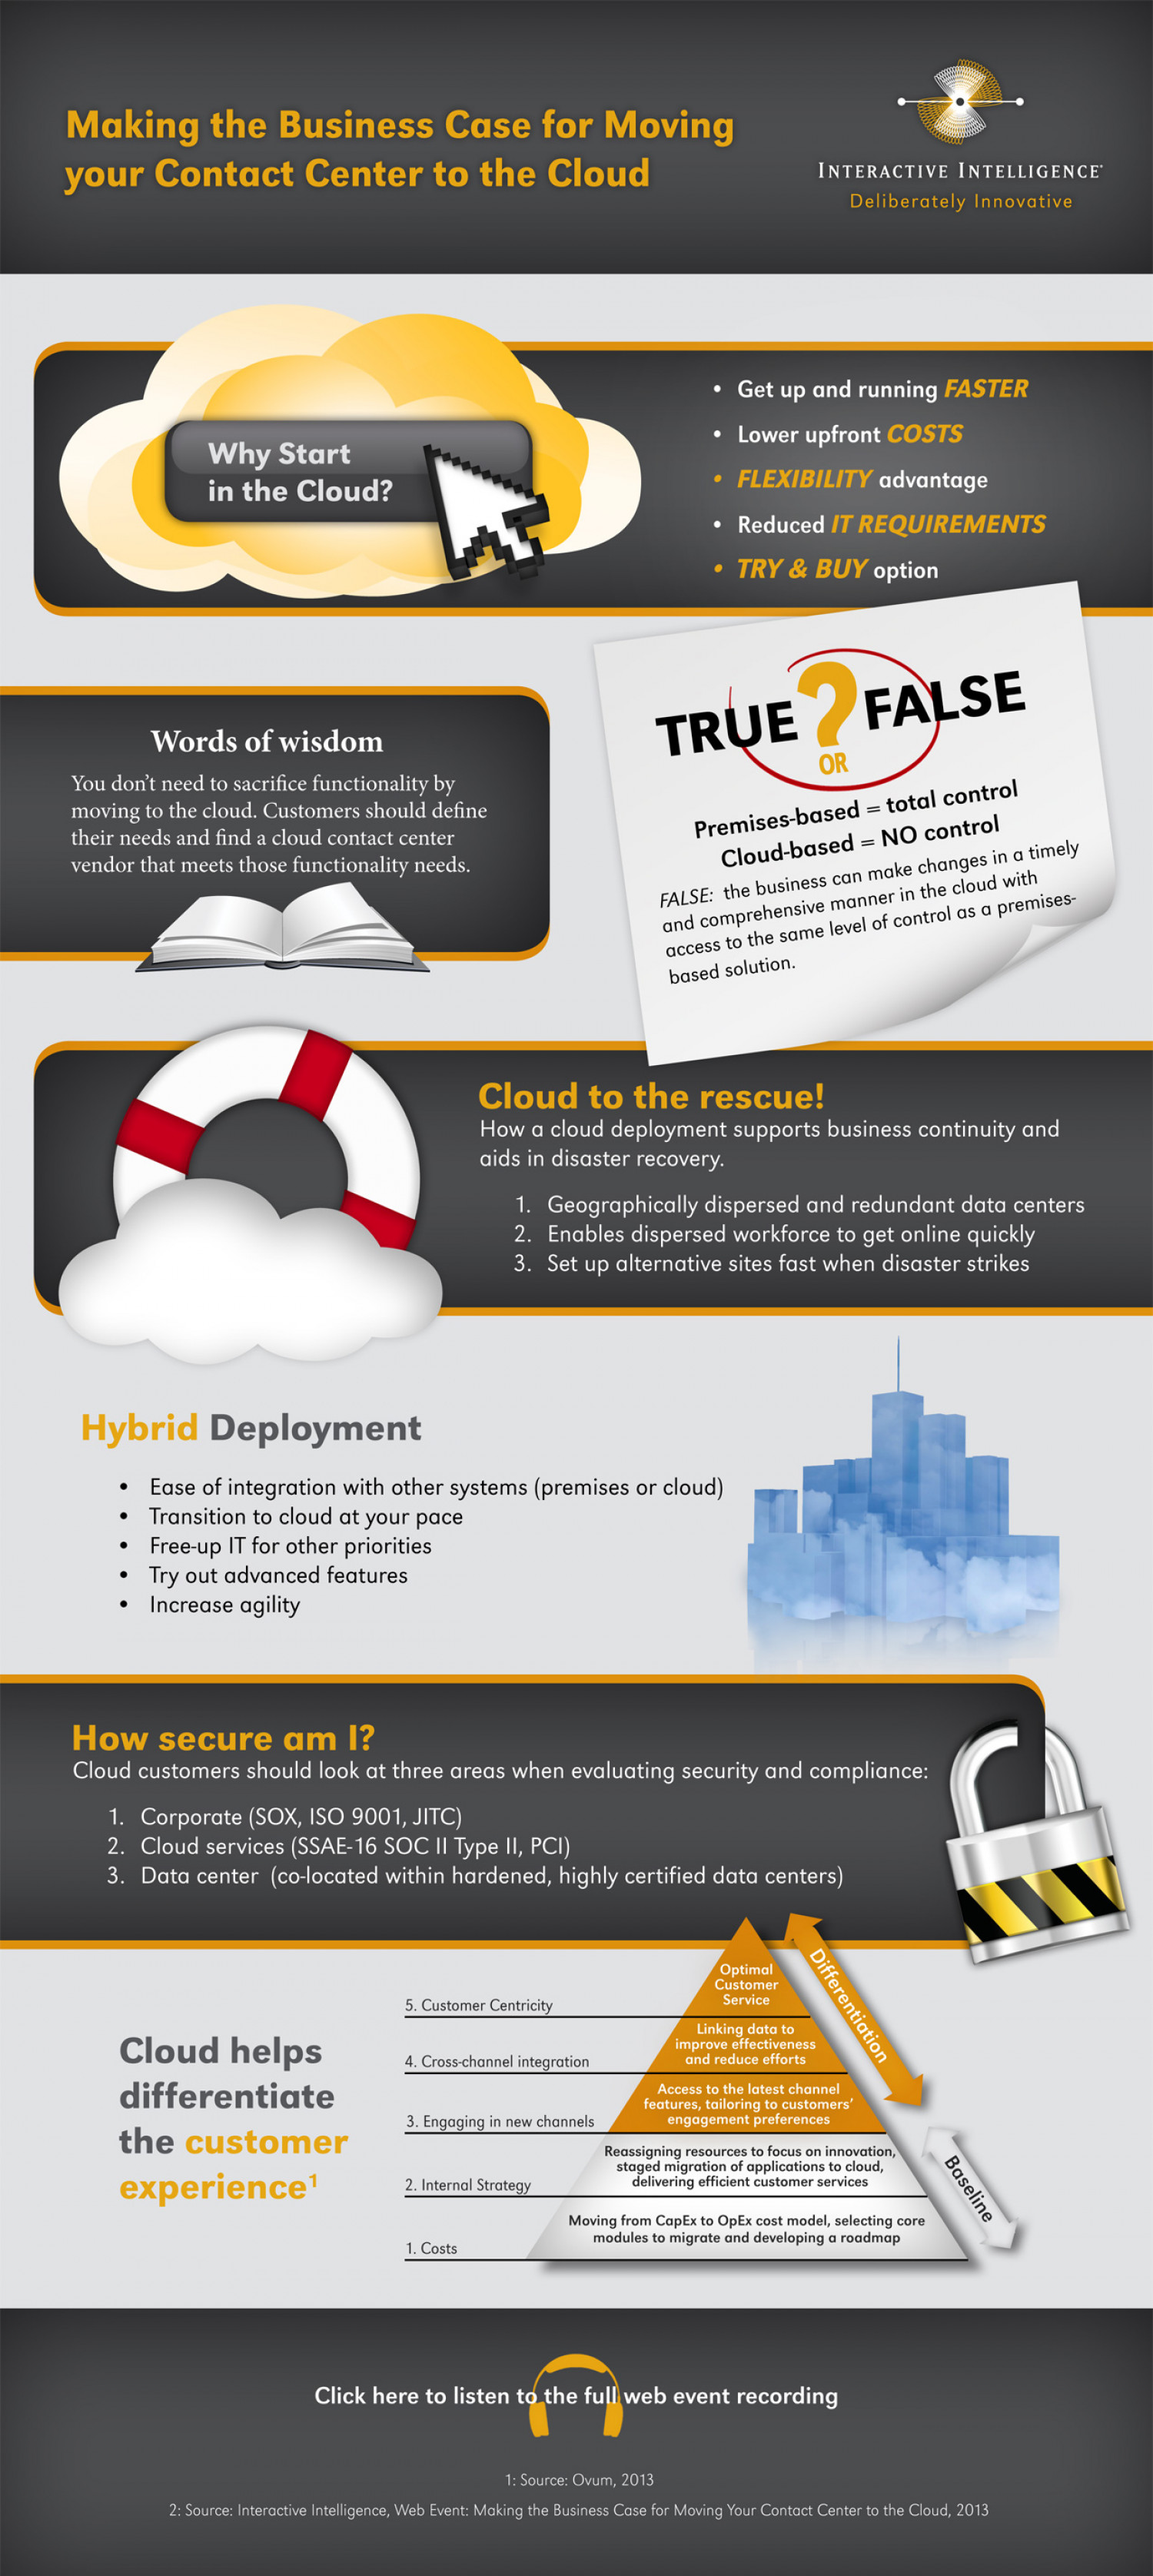 Making the Business Case for Moving your Contact Center to the Cloud – Interactive Intelligence Infographic